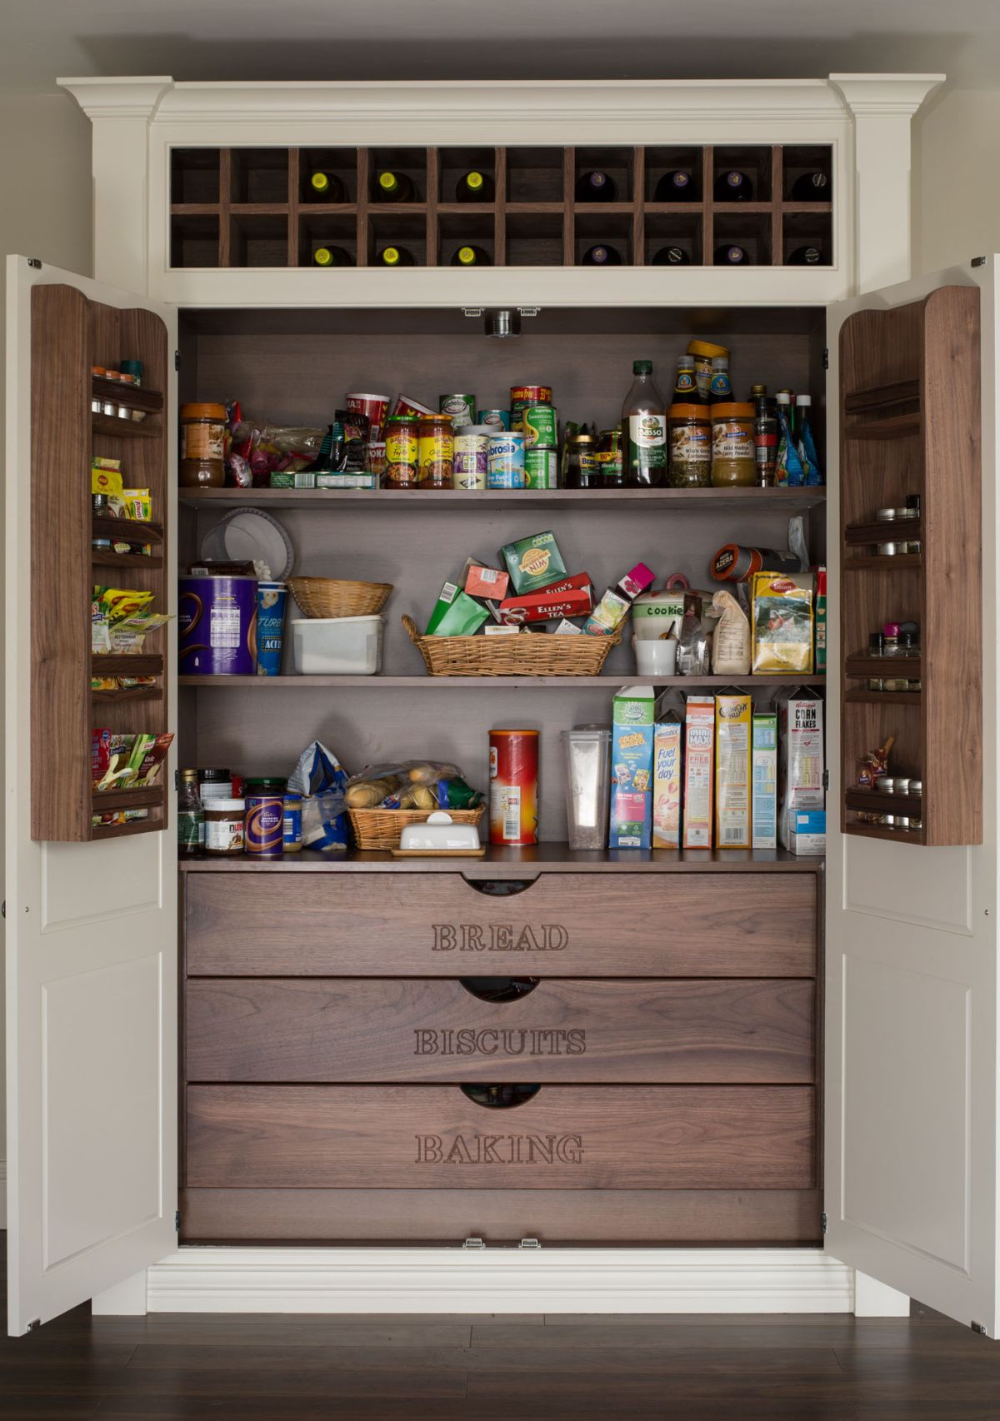 By Definition A Pantry Is A Small Room Or Closet In Which Food Dishes And Utensils Are Kept While The De In 2020 Diy Pantry Cabinet Pantry Design Built In Pantry